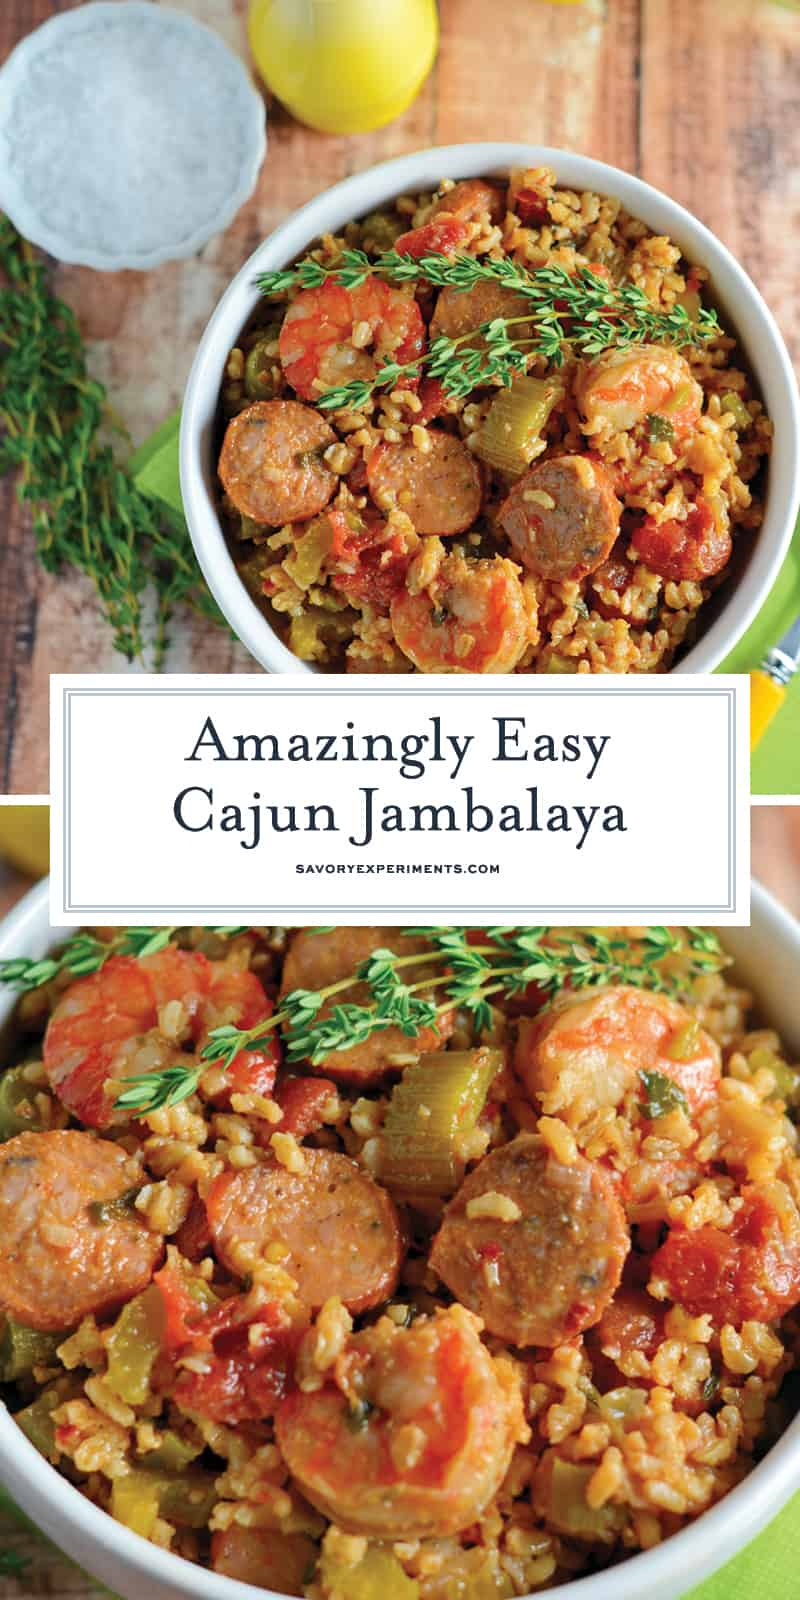 This Cajun Jambalaya is a mouthwatering recipe that can be ready in less than an hour. Andouille turkey sausage and shrimp give this recipe so much flavor! #cajunjambalaya #healthyjambalaya #easyjambalaya www.savoryexperiments.com